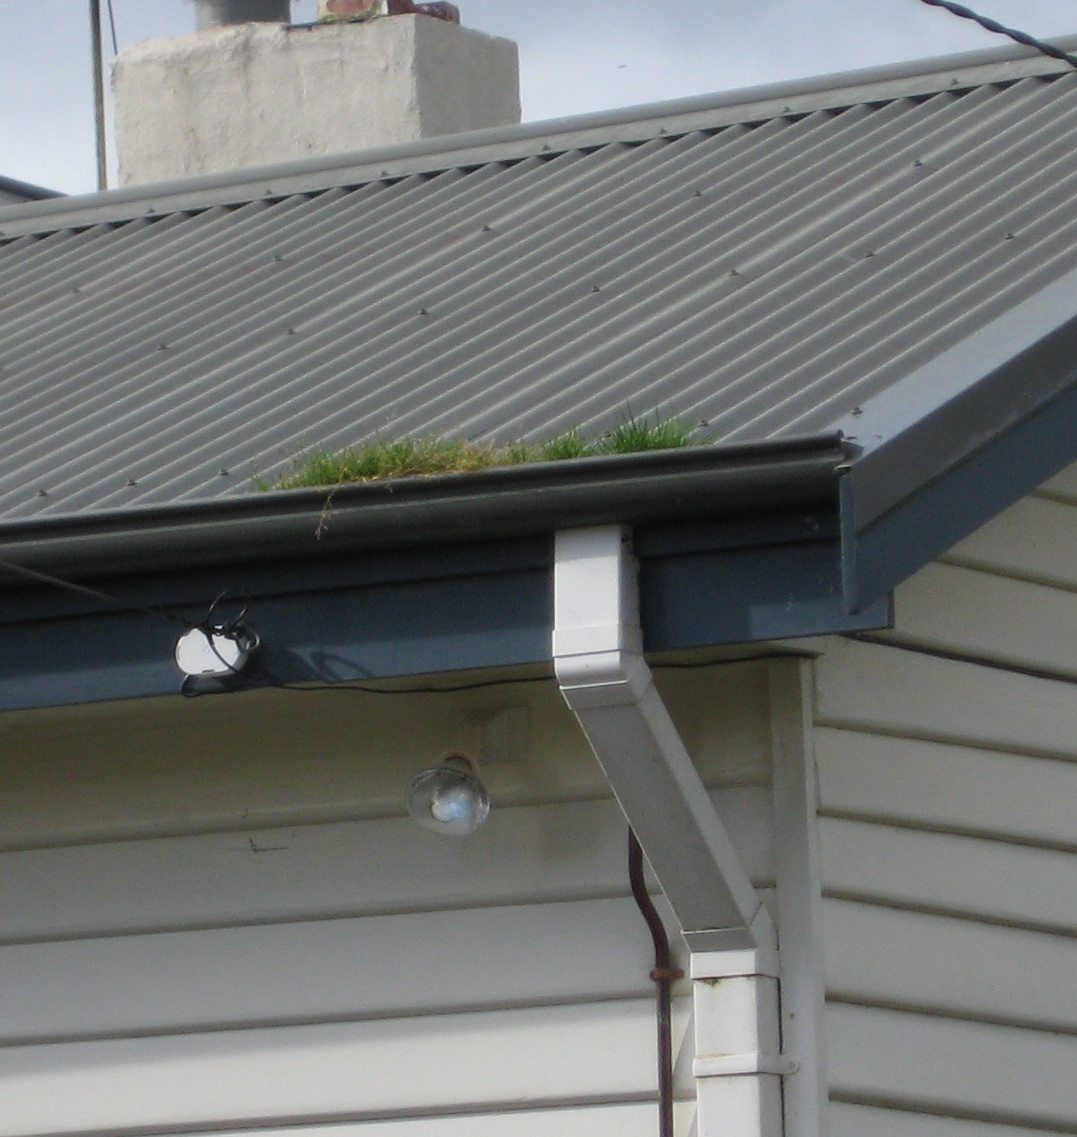 Houston And Surrounding Suburb Homeowners Can Expect Exceptional Service From Ned Stevens Gutter Cleani Home Maintenance Autumn Home Home Maintenance Checklist